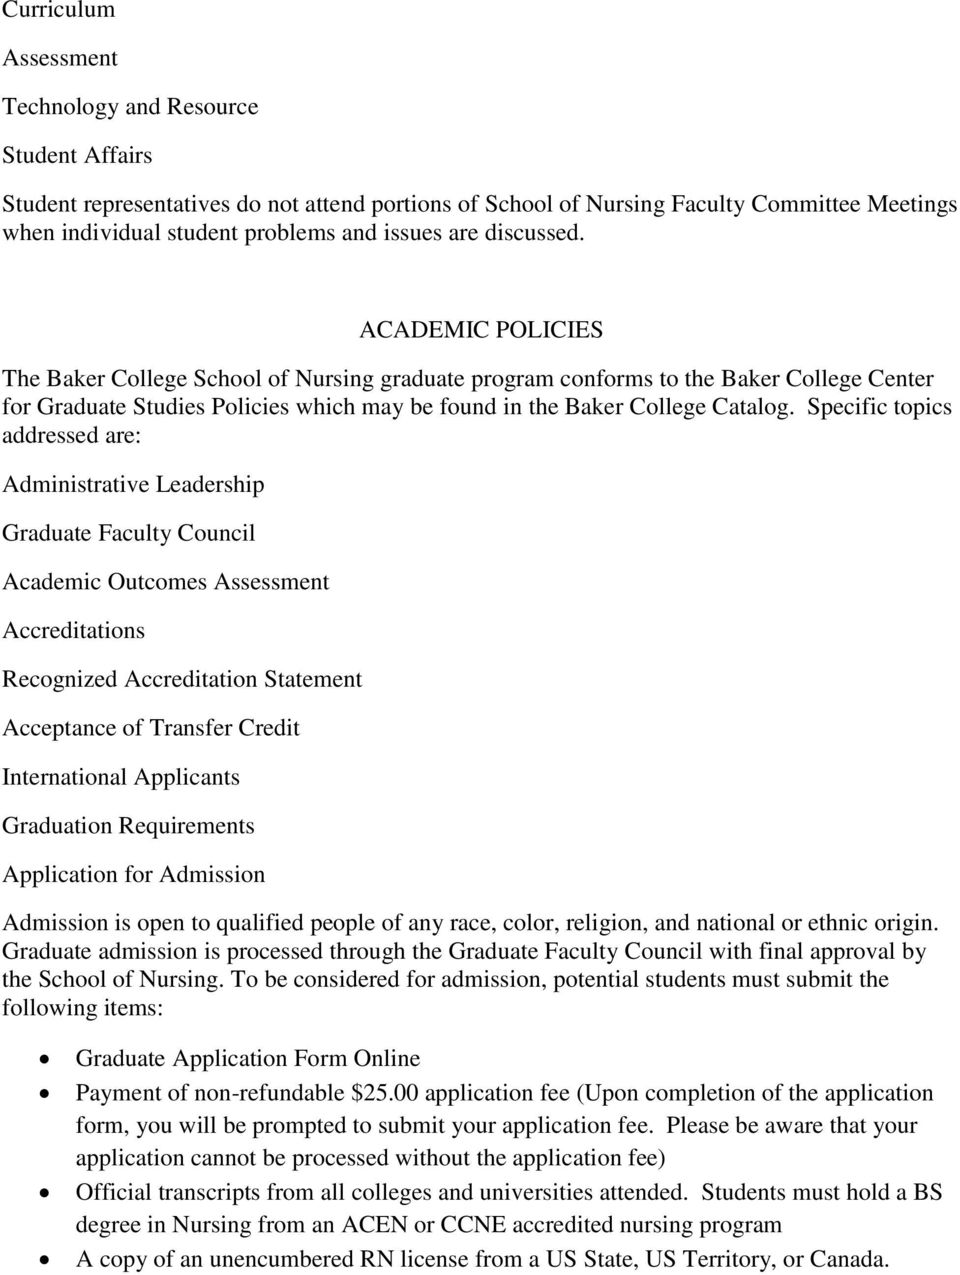 ACADEMIC POLICIES The Baker College School of Nursing graduate program conforms to the Baker College Center for Graduate Studies Policies which may be found in the Baker College Catalog.